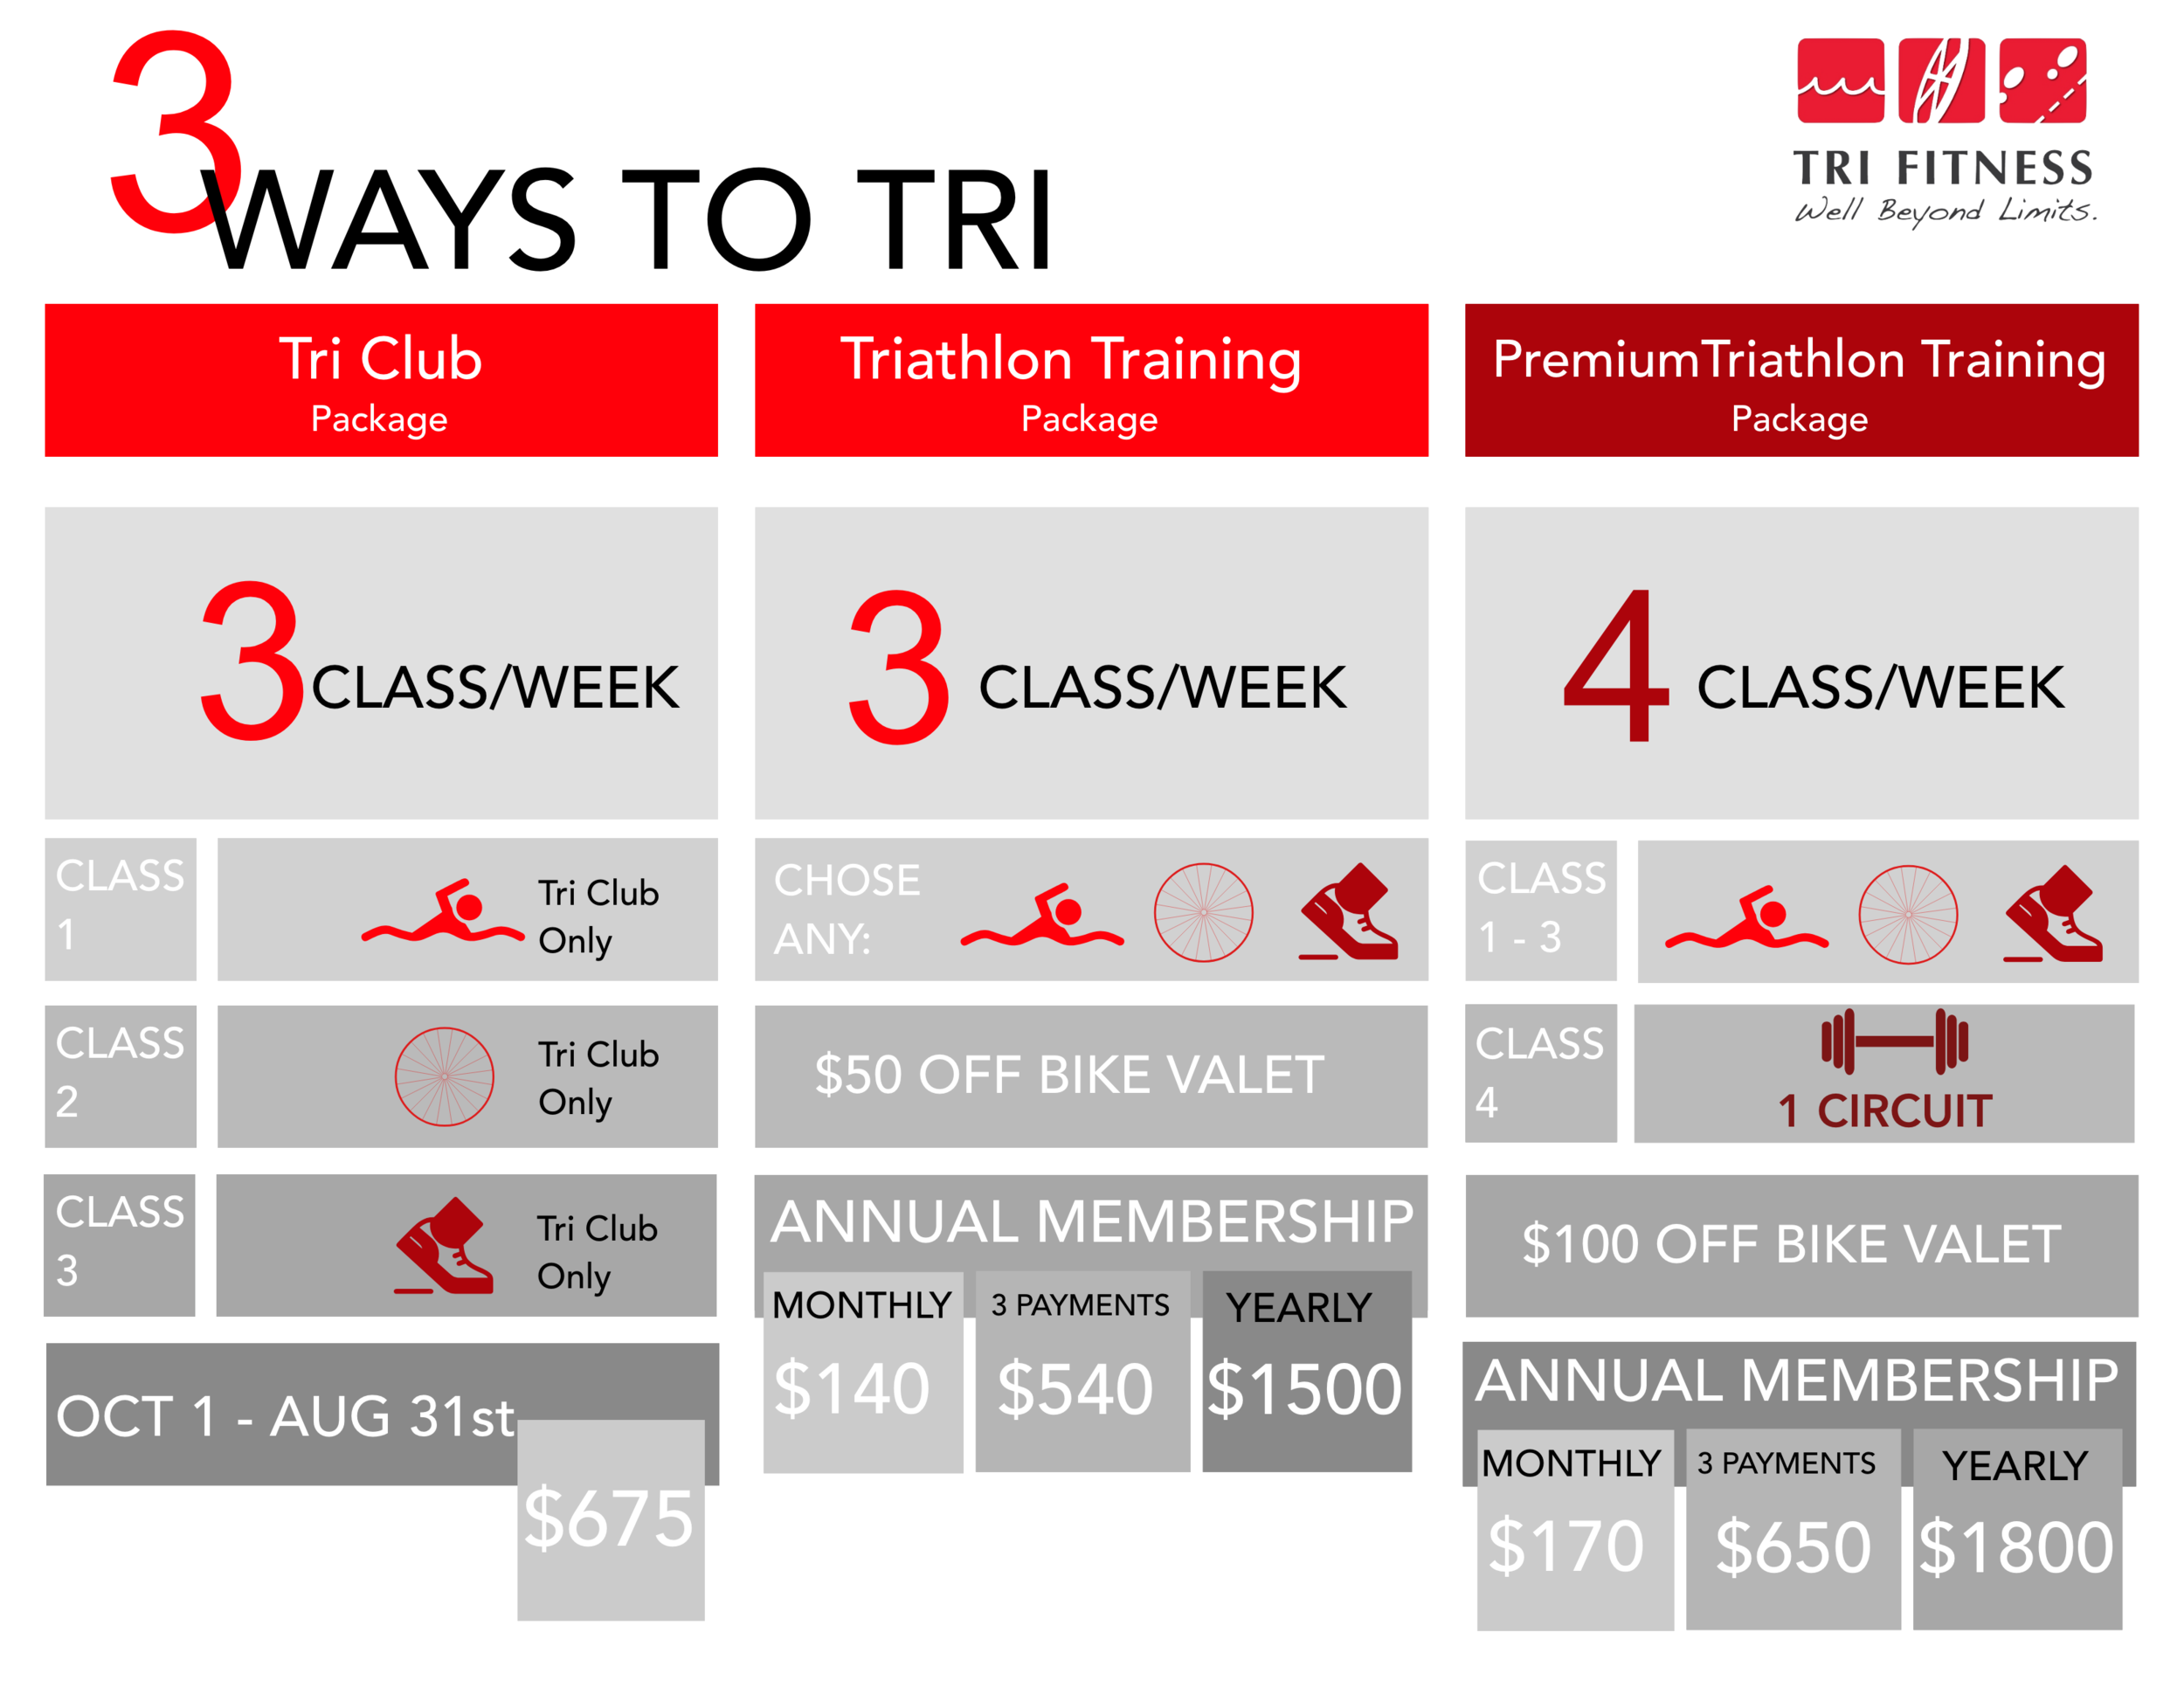 3ways to tri 2018-2019.png